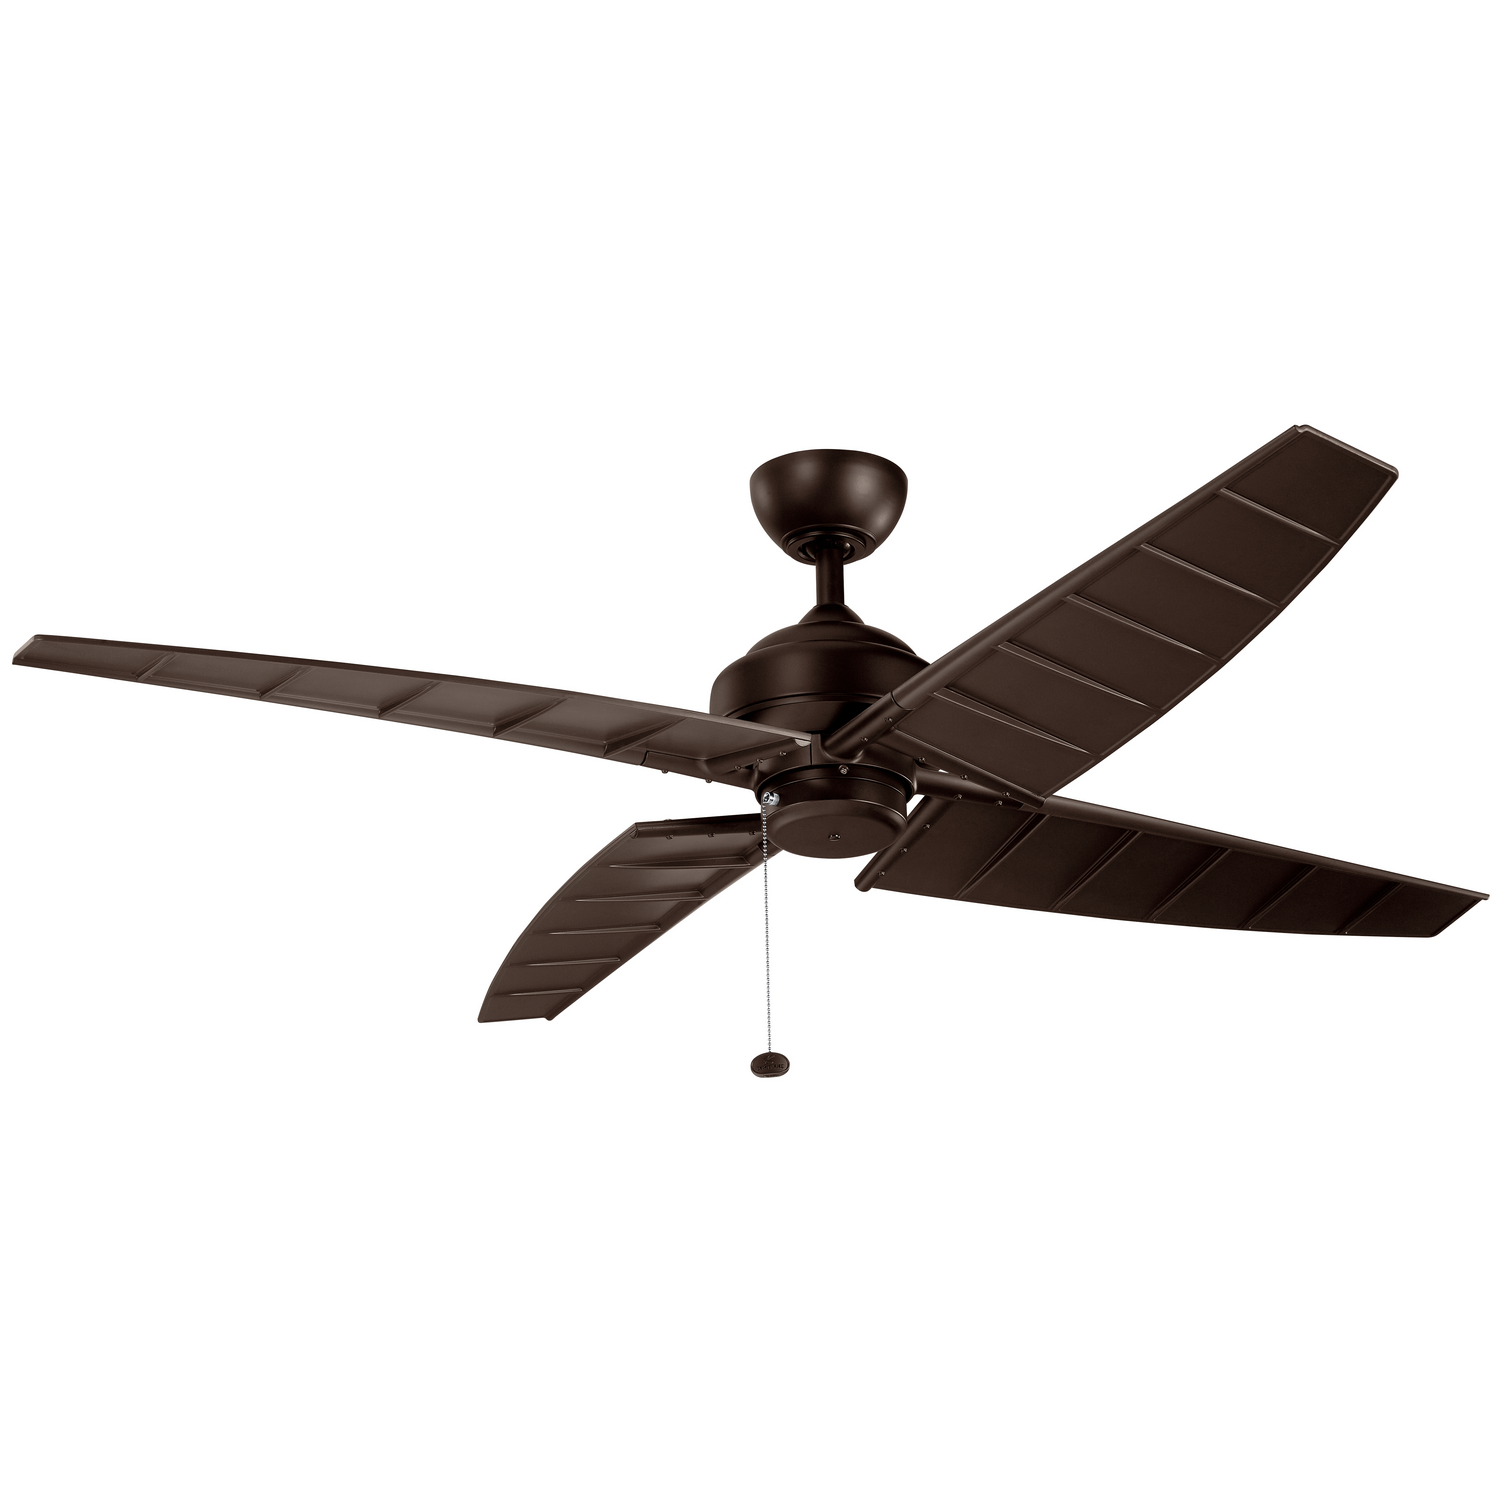 60 inchCeiling Fan from the Surrey collection by Kichler 300250SNB